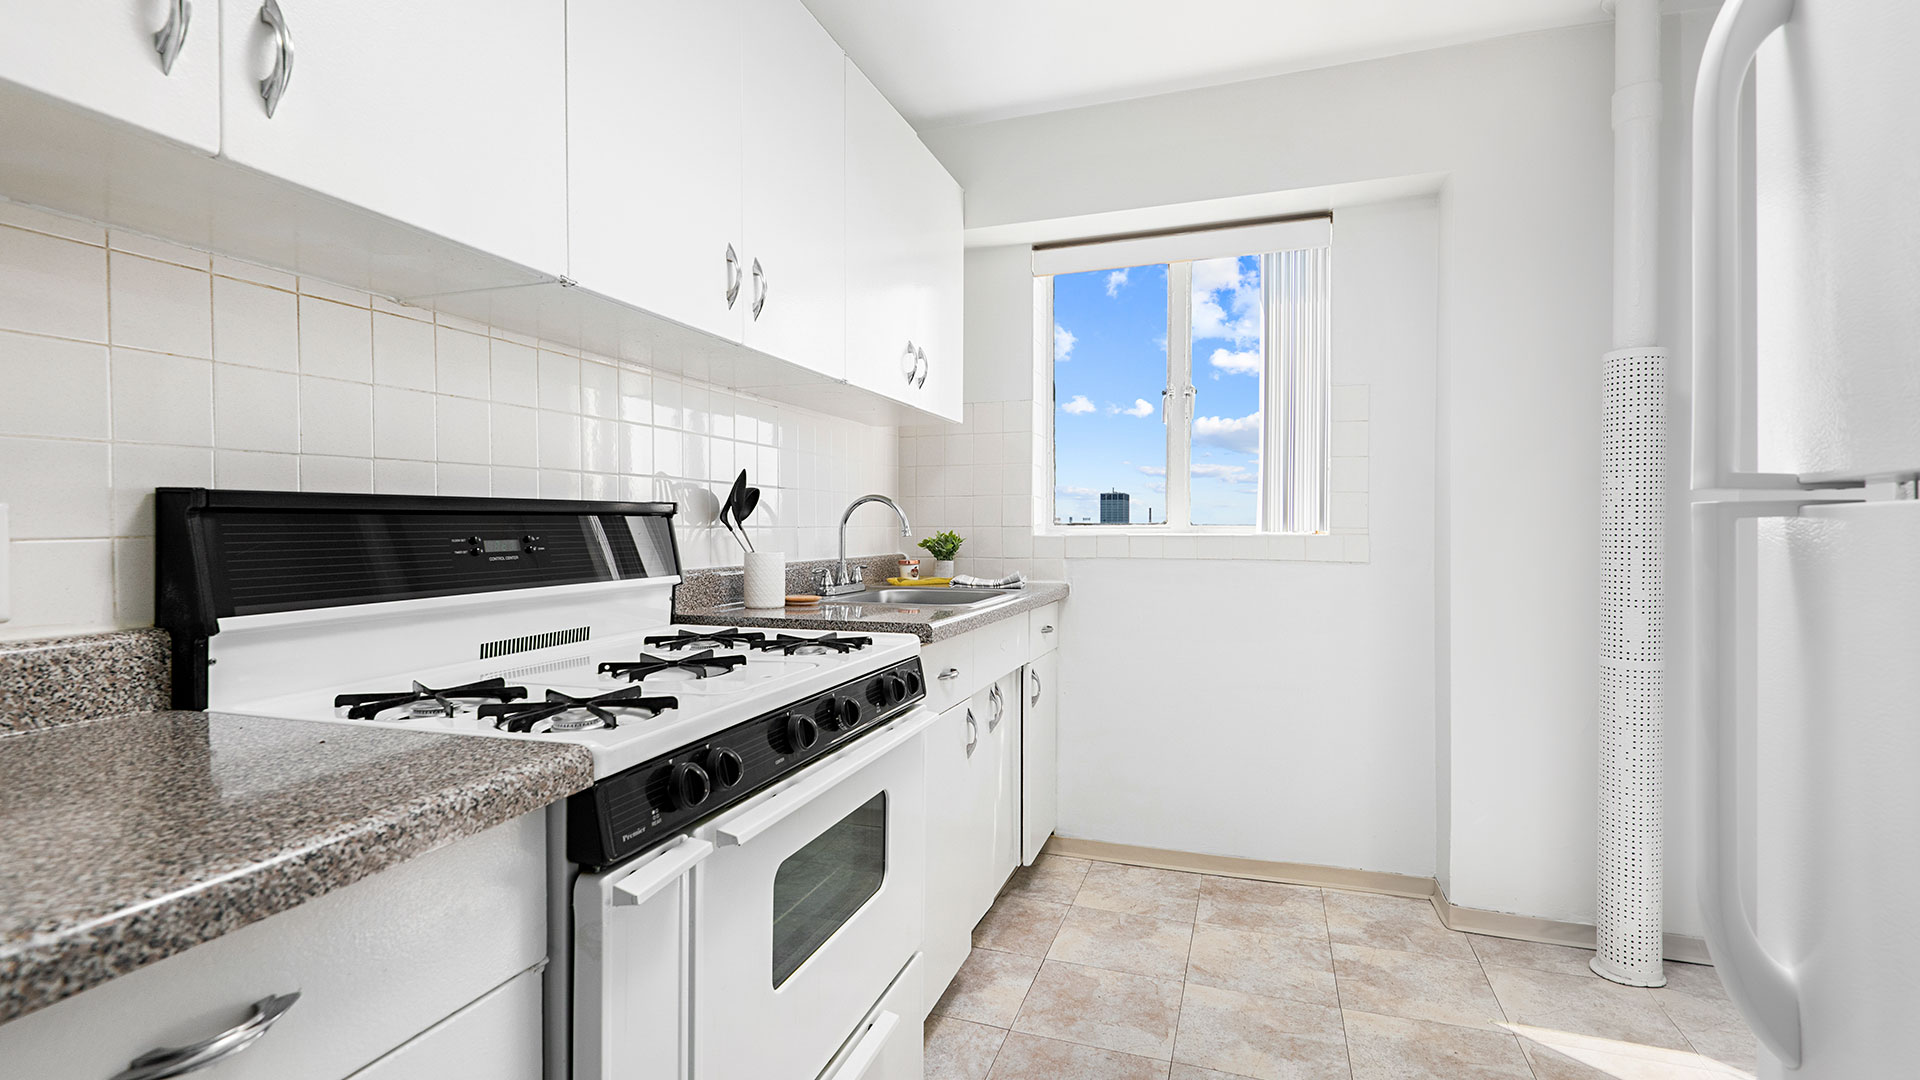 A standard kitchen in a Lake Meadow mid-rise residence with white cabinets and appliances. A bright blue sky with a few clouds is seen out the window.